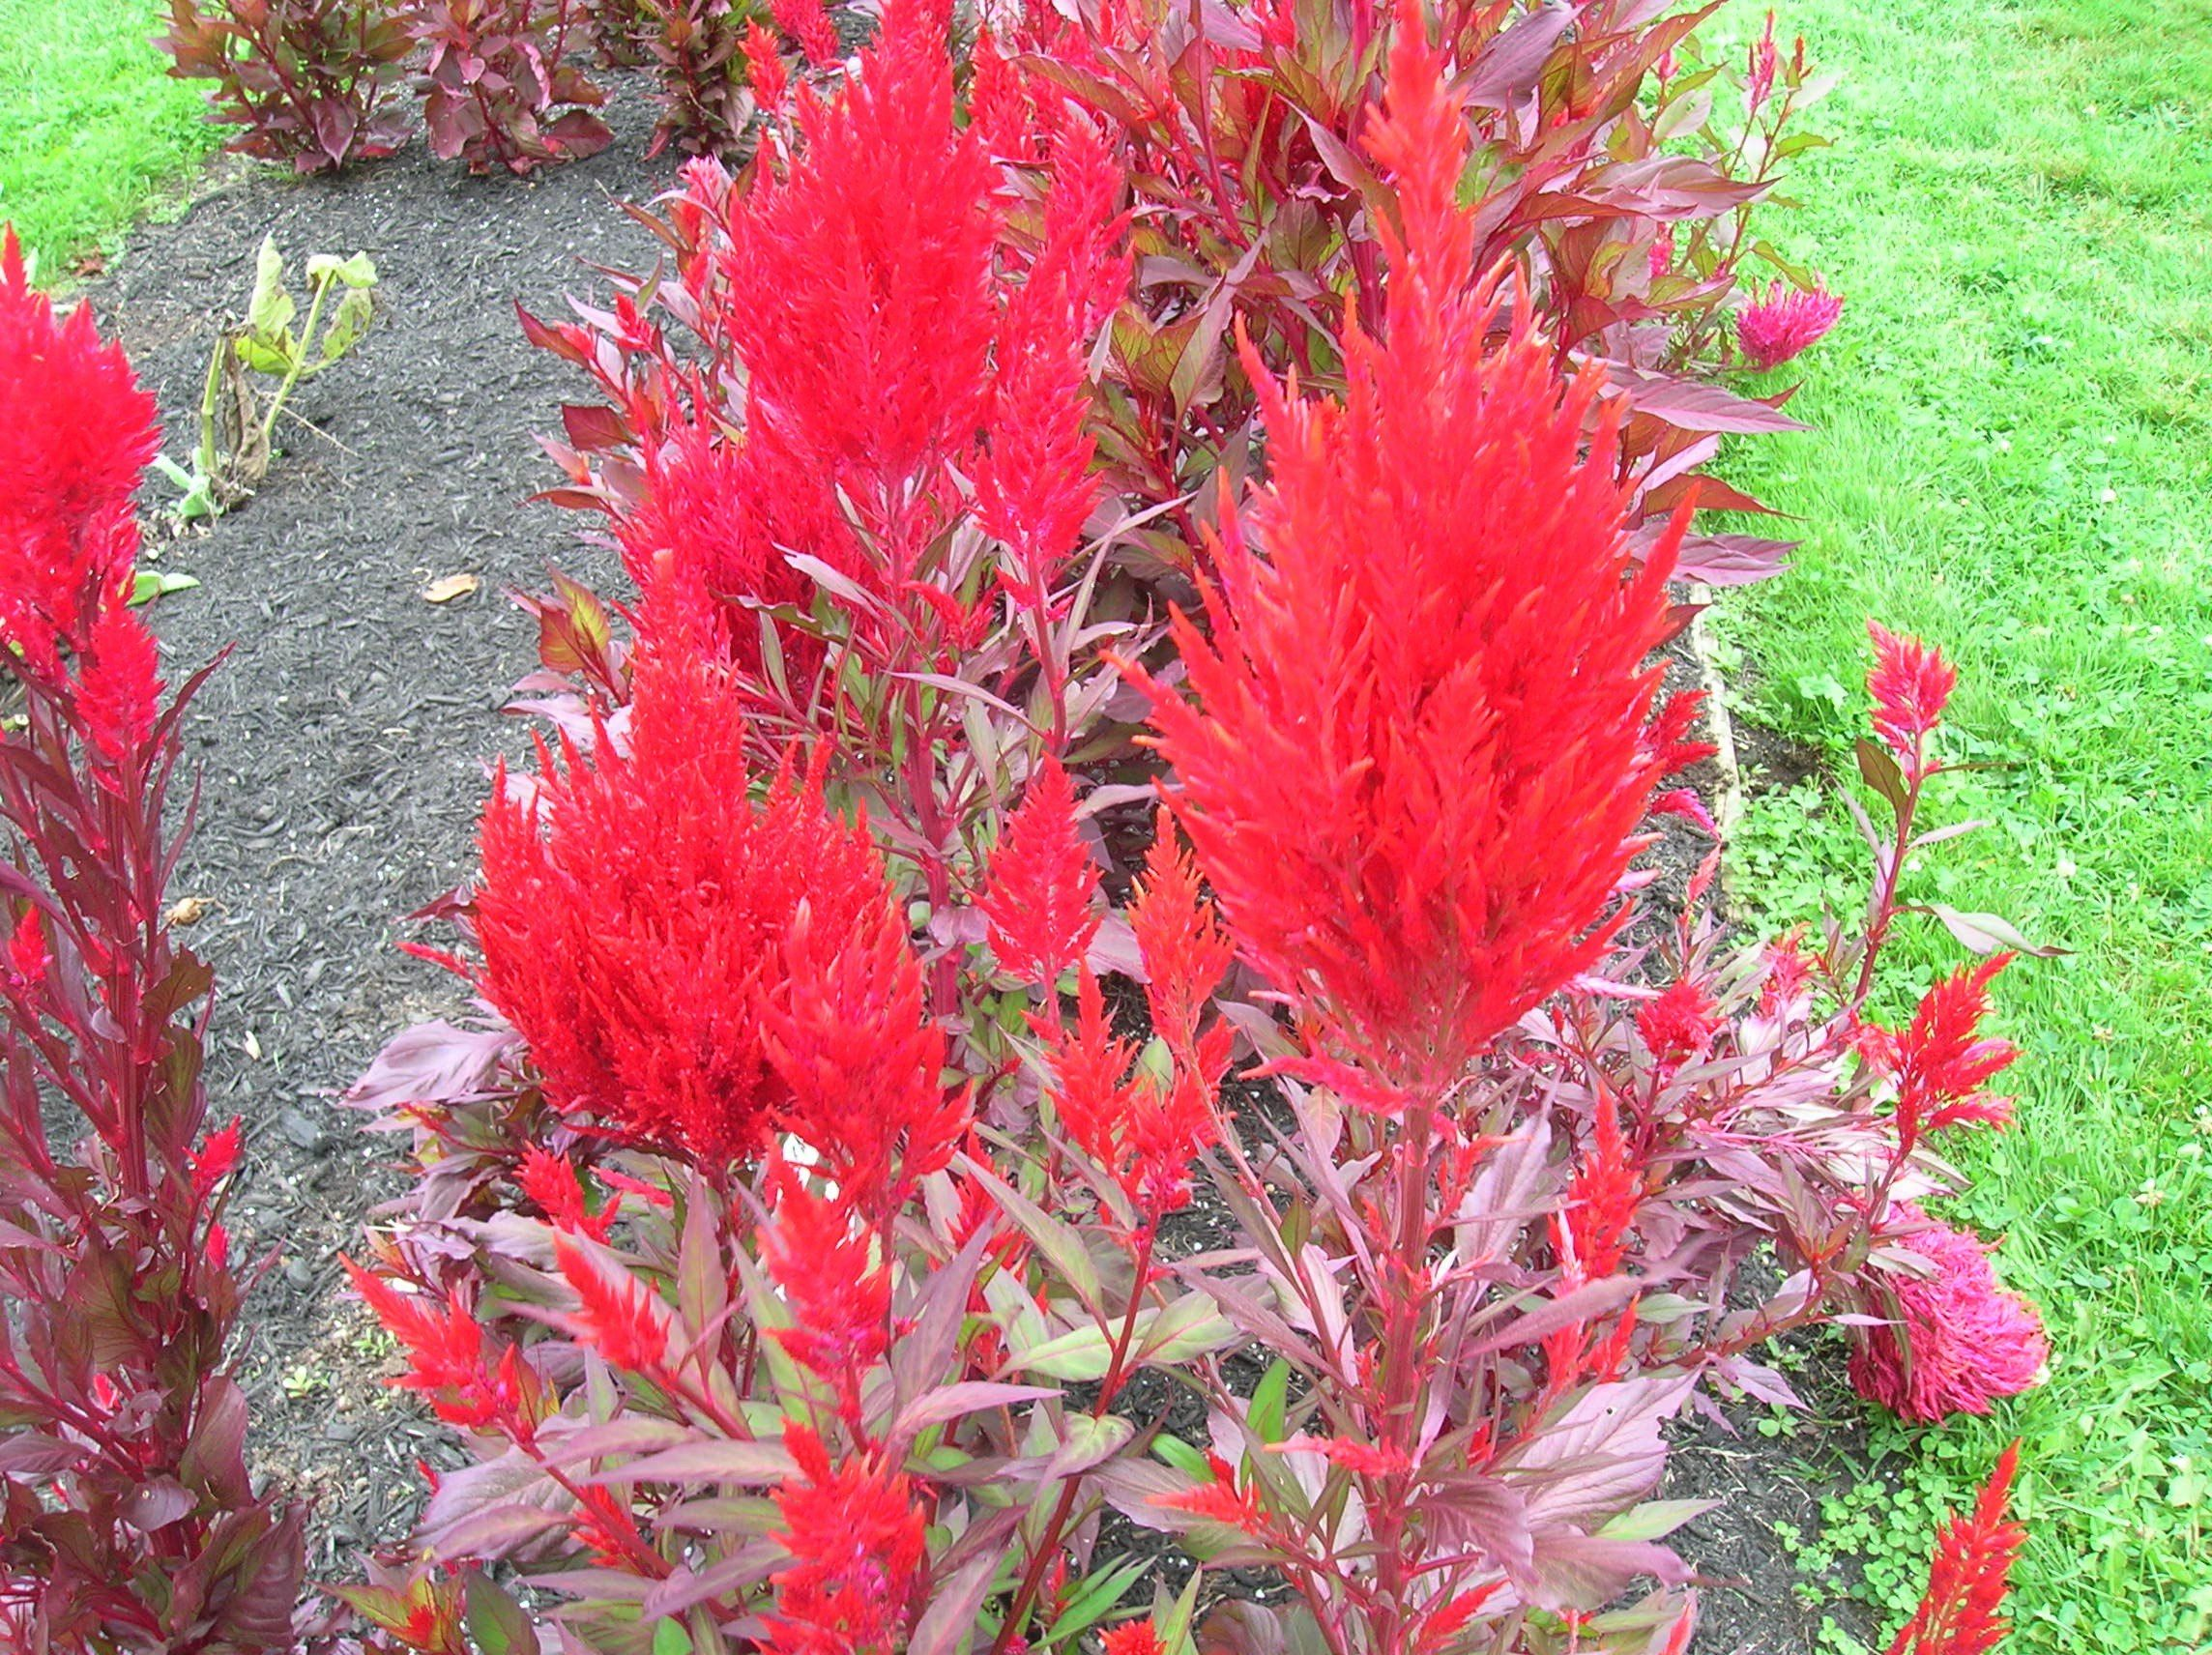 How To Grow Celosia Grow Celosia Grow Cockscomb Growing Flowers Coxcomb Flowers Spring Planting Guide